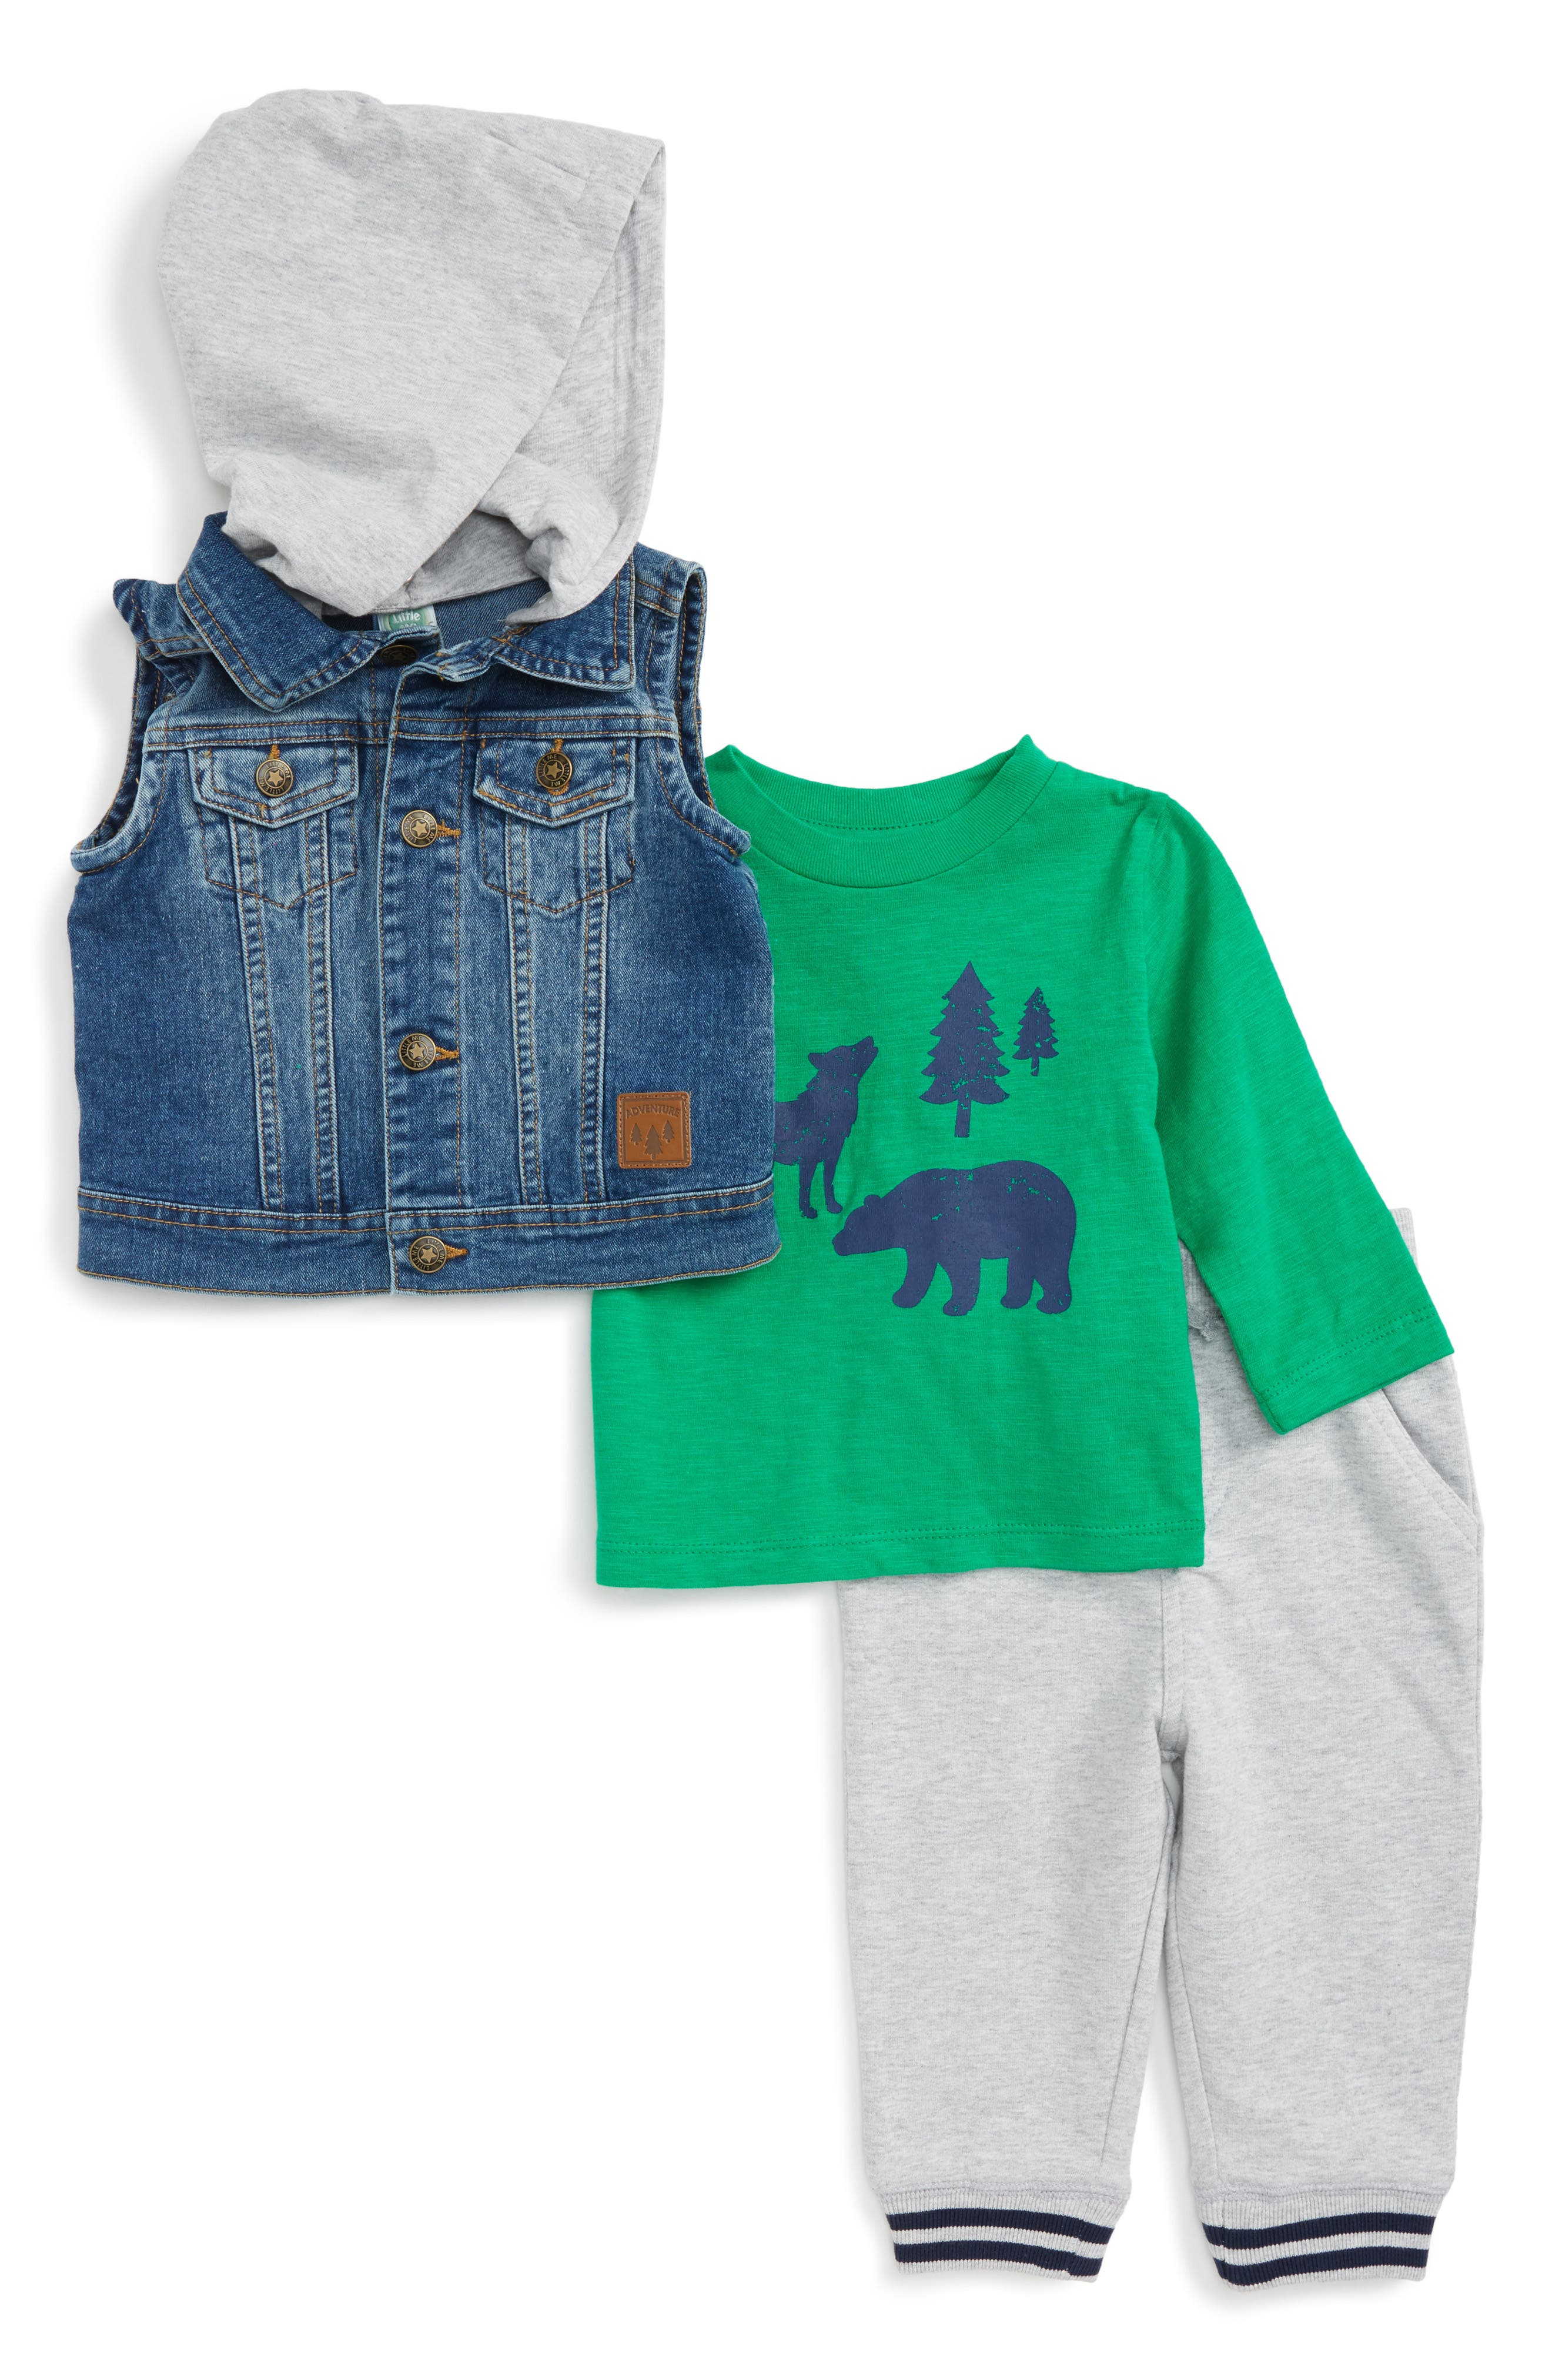 Main Image - Little Me Denim Vest, T-shirt & Pants Set (Baby Boys)